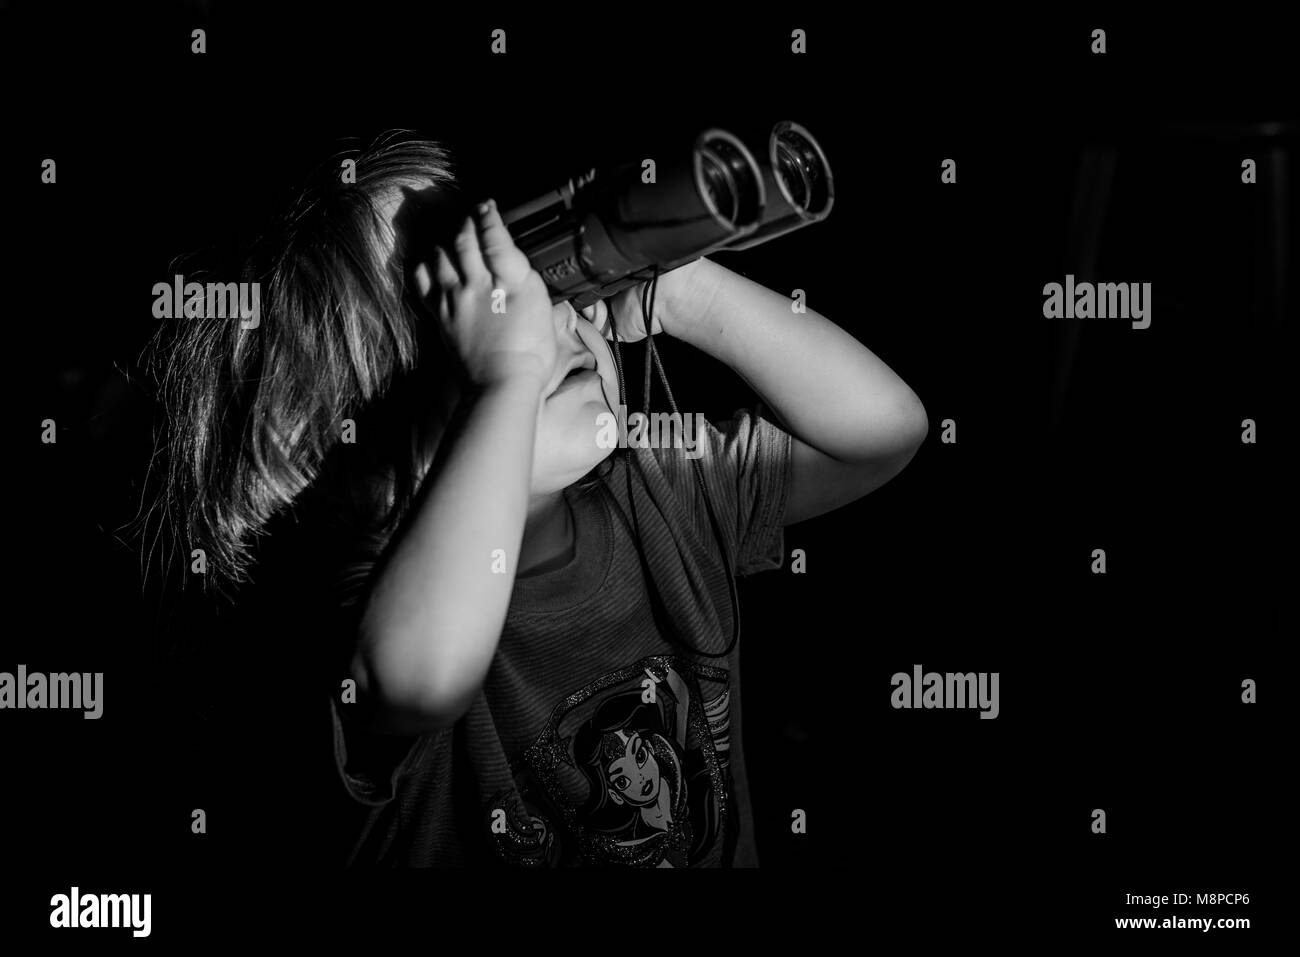 A young toddler girl looking through binoculars. - Stock Image